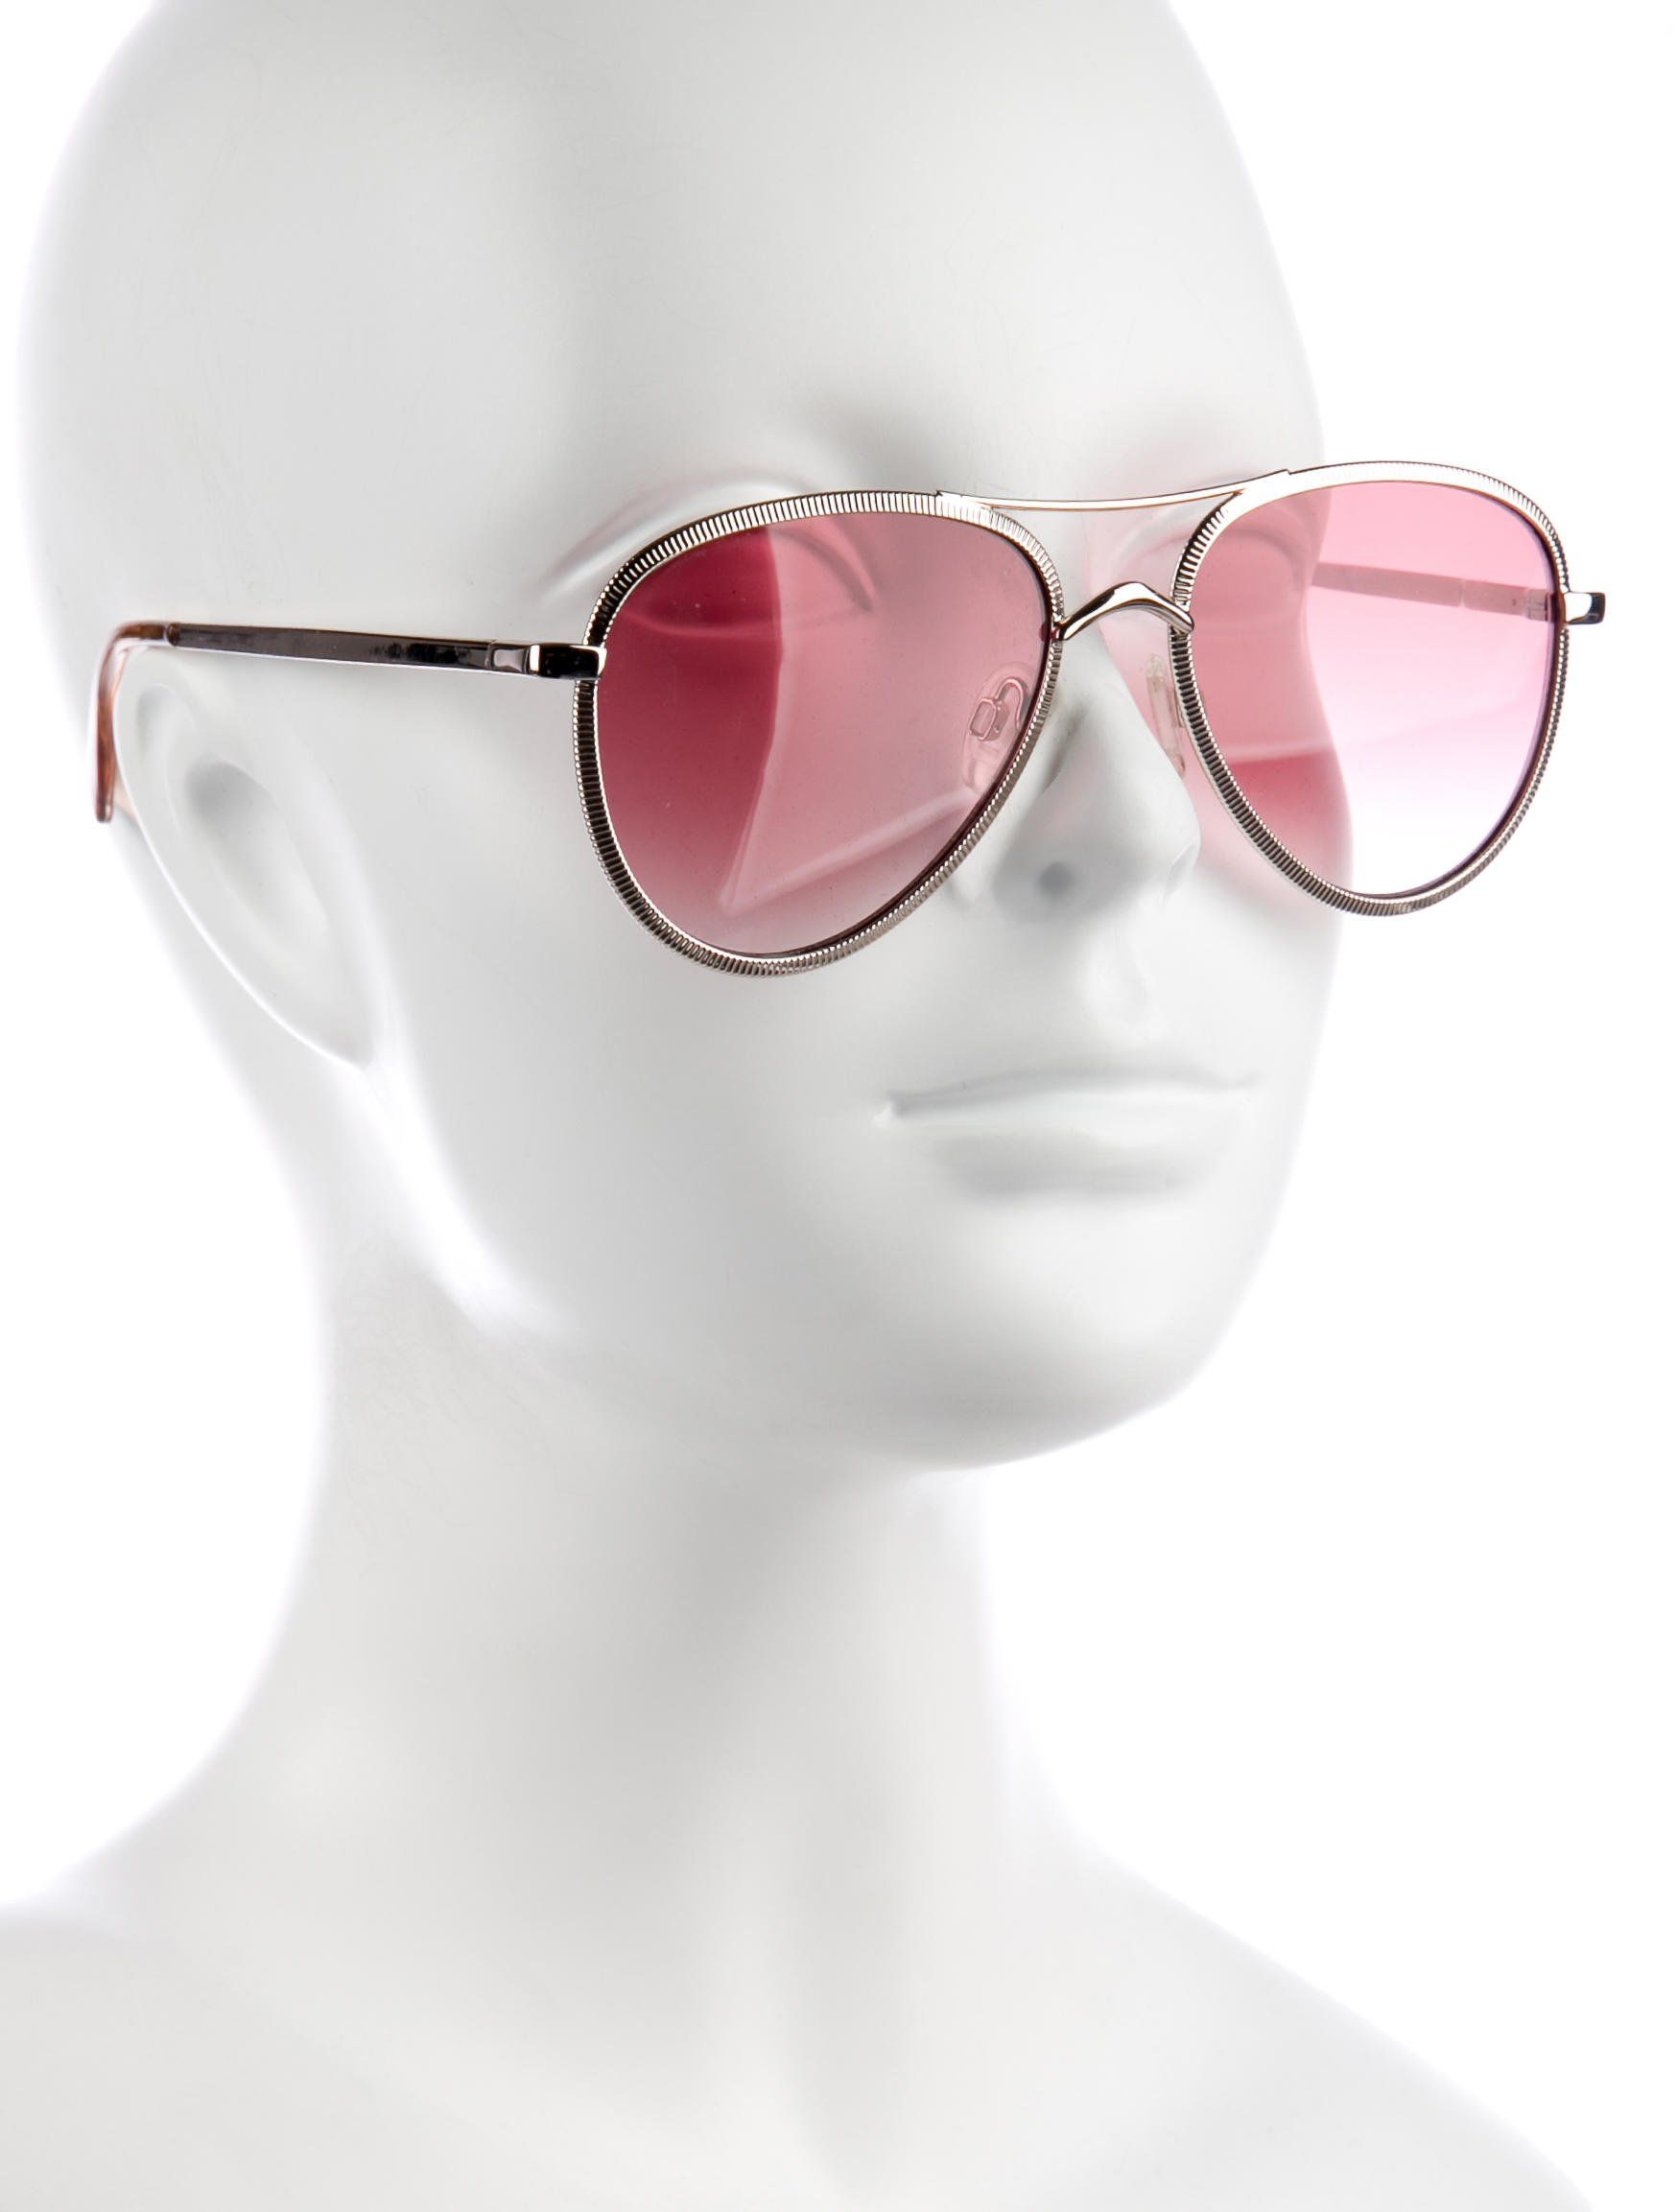 Silver metal Le Specs Empire sunglasses with tinted lenses